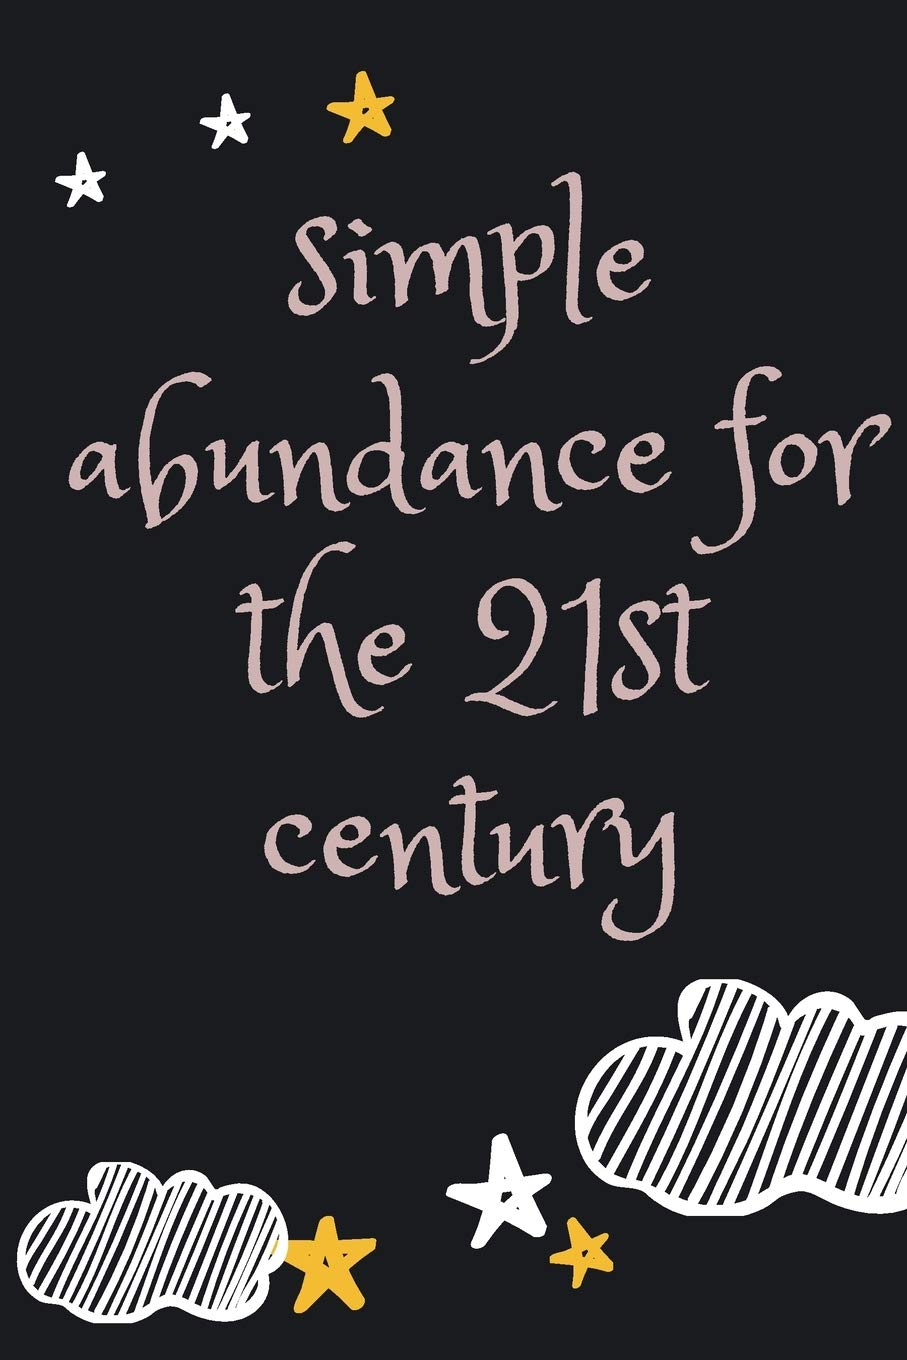 "simple abundance for the 21st century Notebook: Daily Gratitude journal,Gratitude daybook,Positive Inspiration Diary ,gift for women & Men,Happiness planner, 100-Page, 6"" x 9"" Glossy finish"